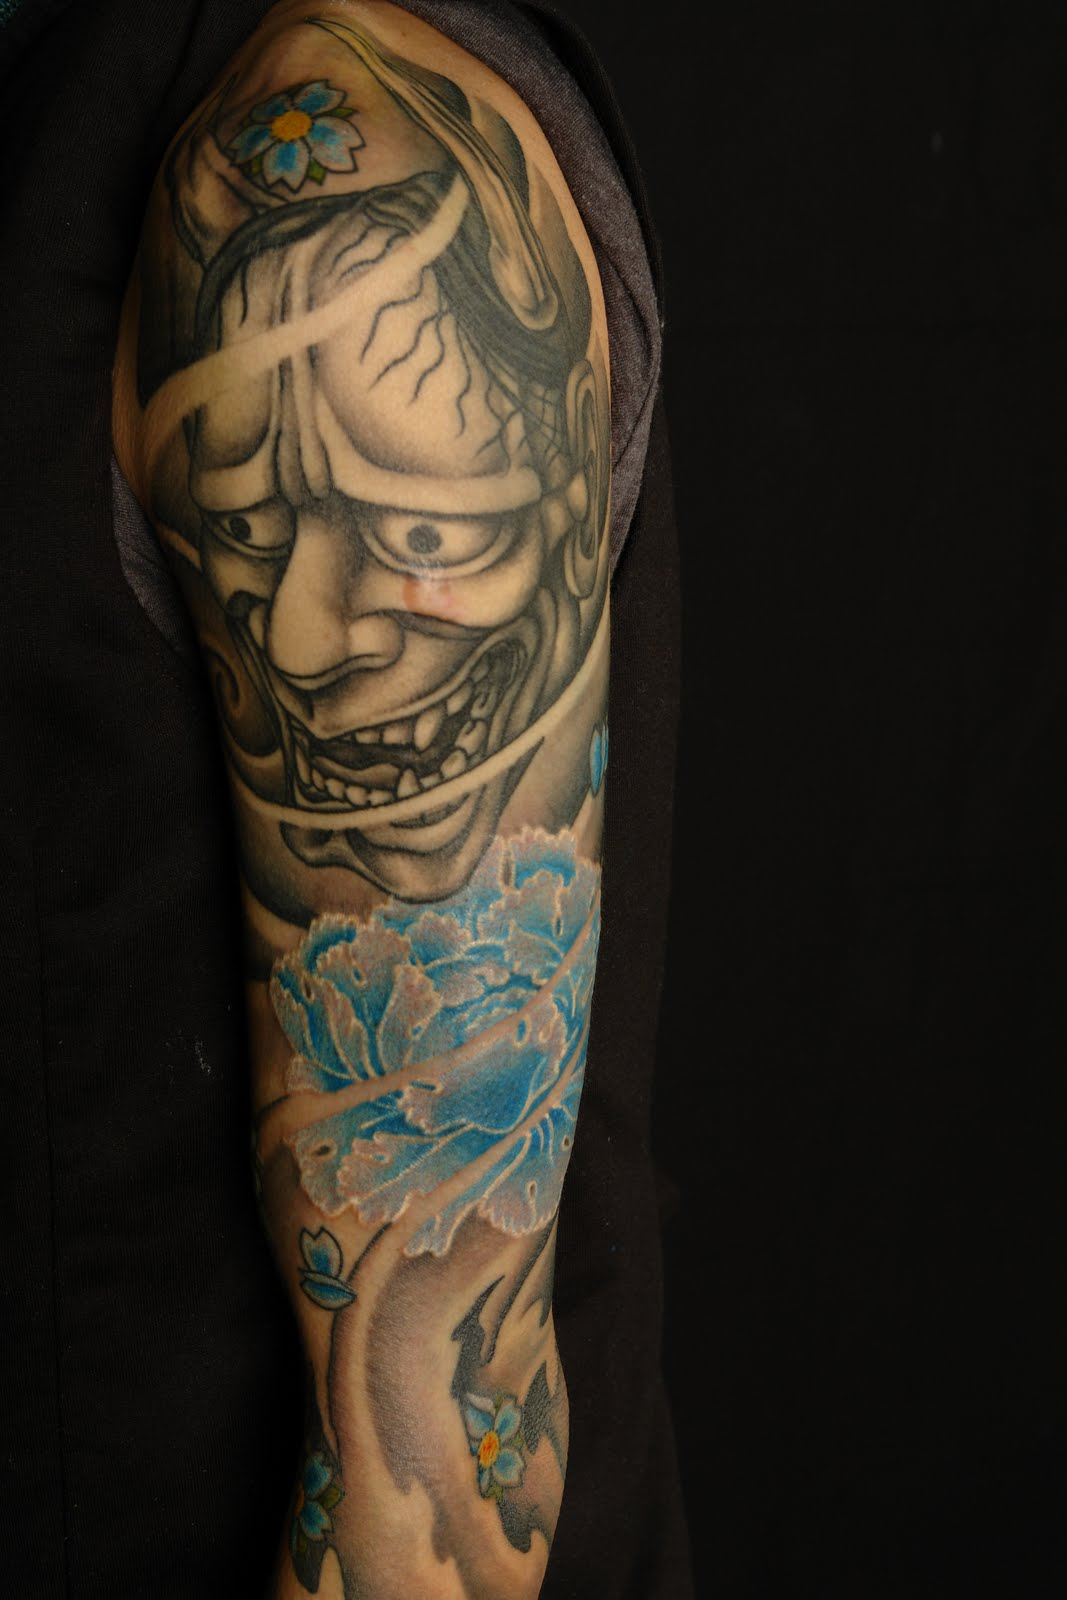 Tattoos for men 2011 japanese sleeve tattoos the for Ideas for half sleeve tattoos for men